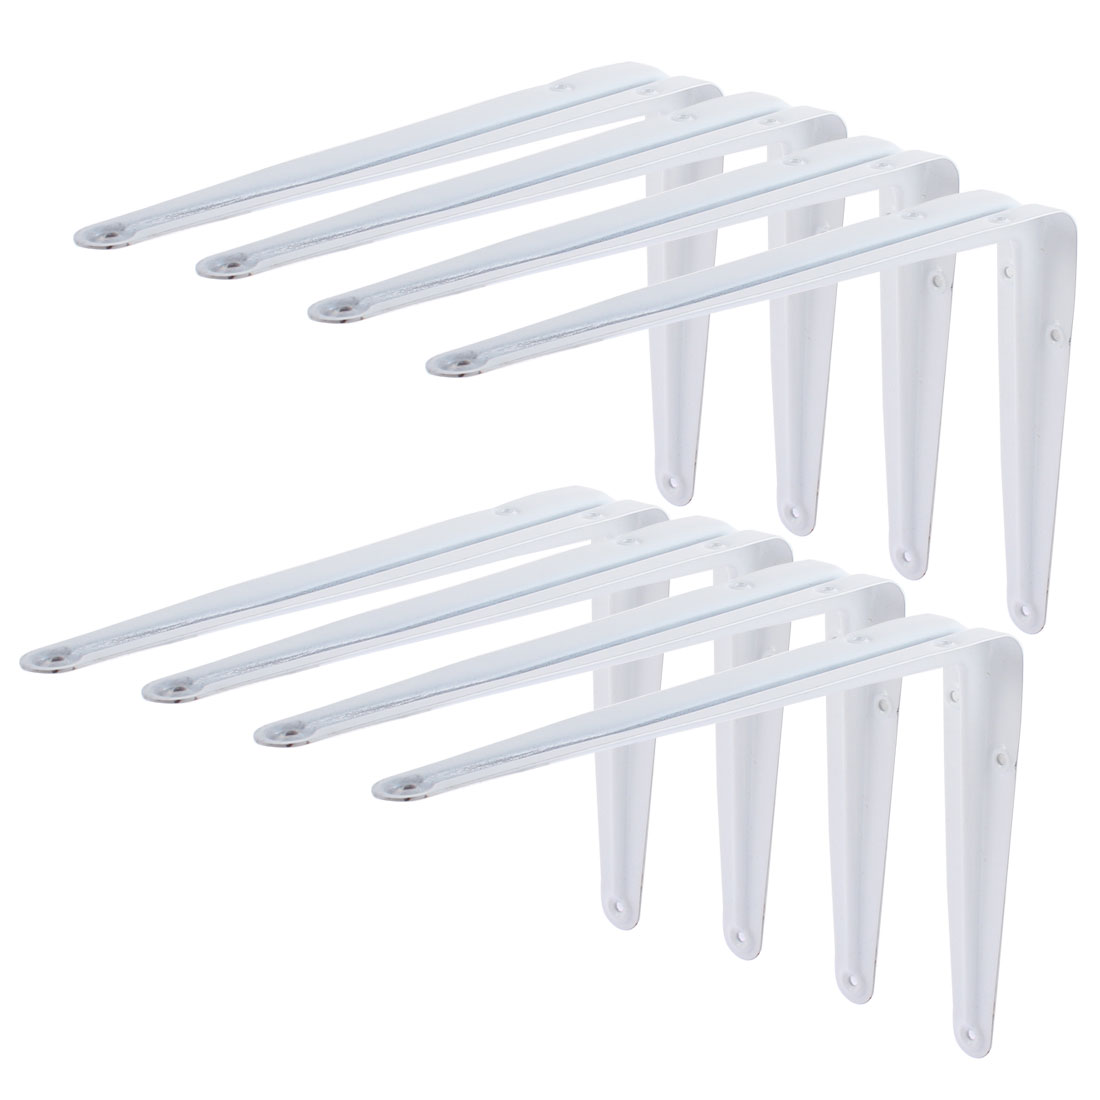 10 Inch Length L Shape Baked Enamel Wall Shelf Support Bracket 8 Pcs